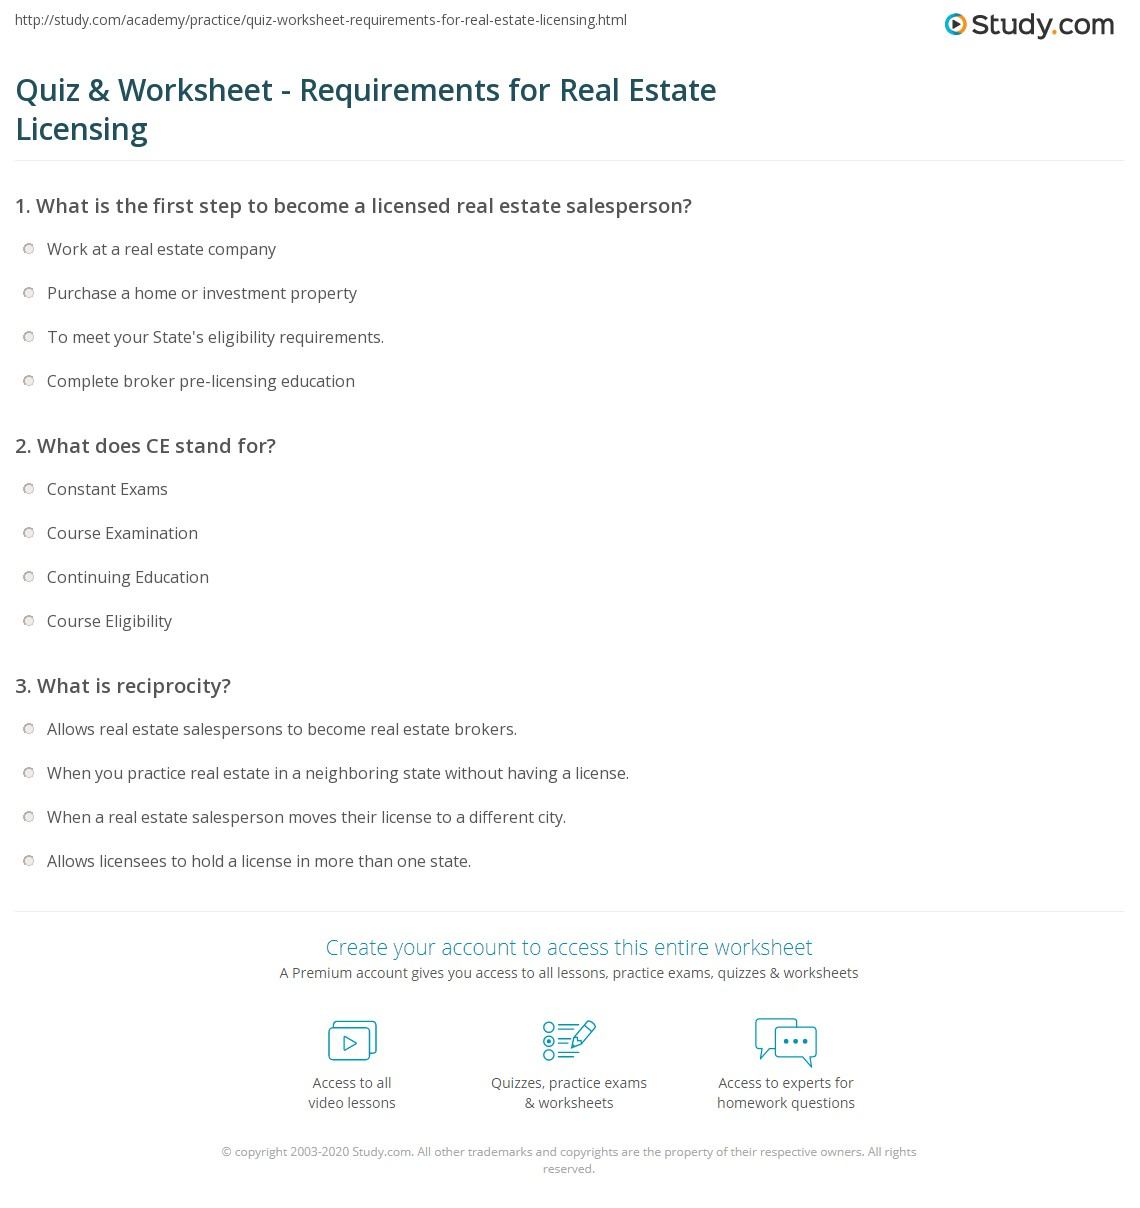 Quiz Worksheet Requirements For Real Estate Licensing Study Com